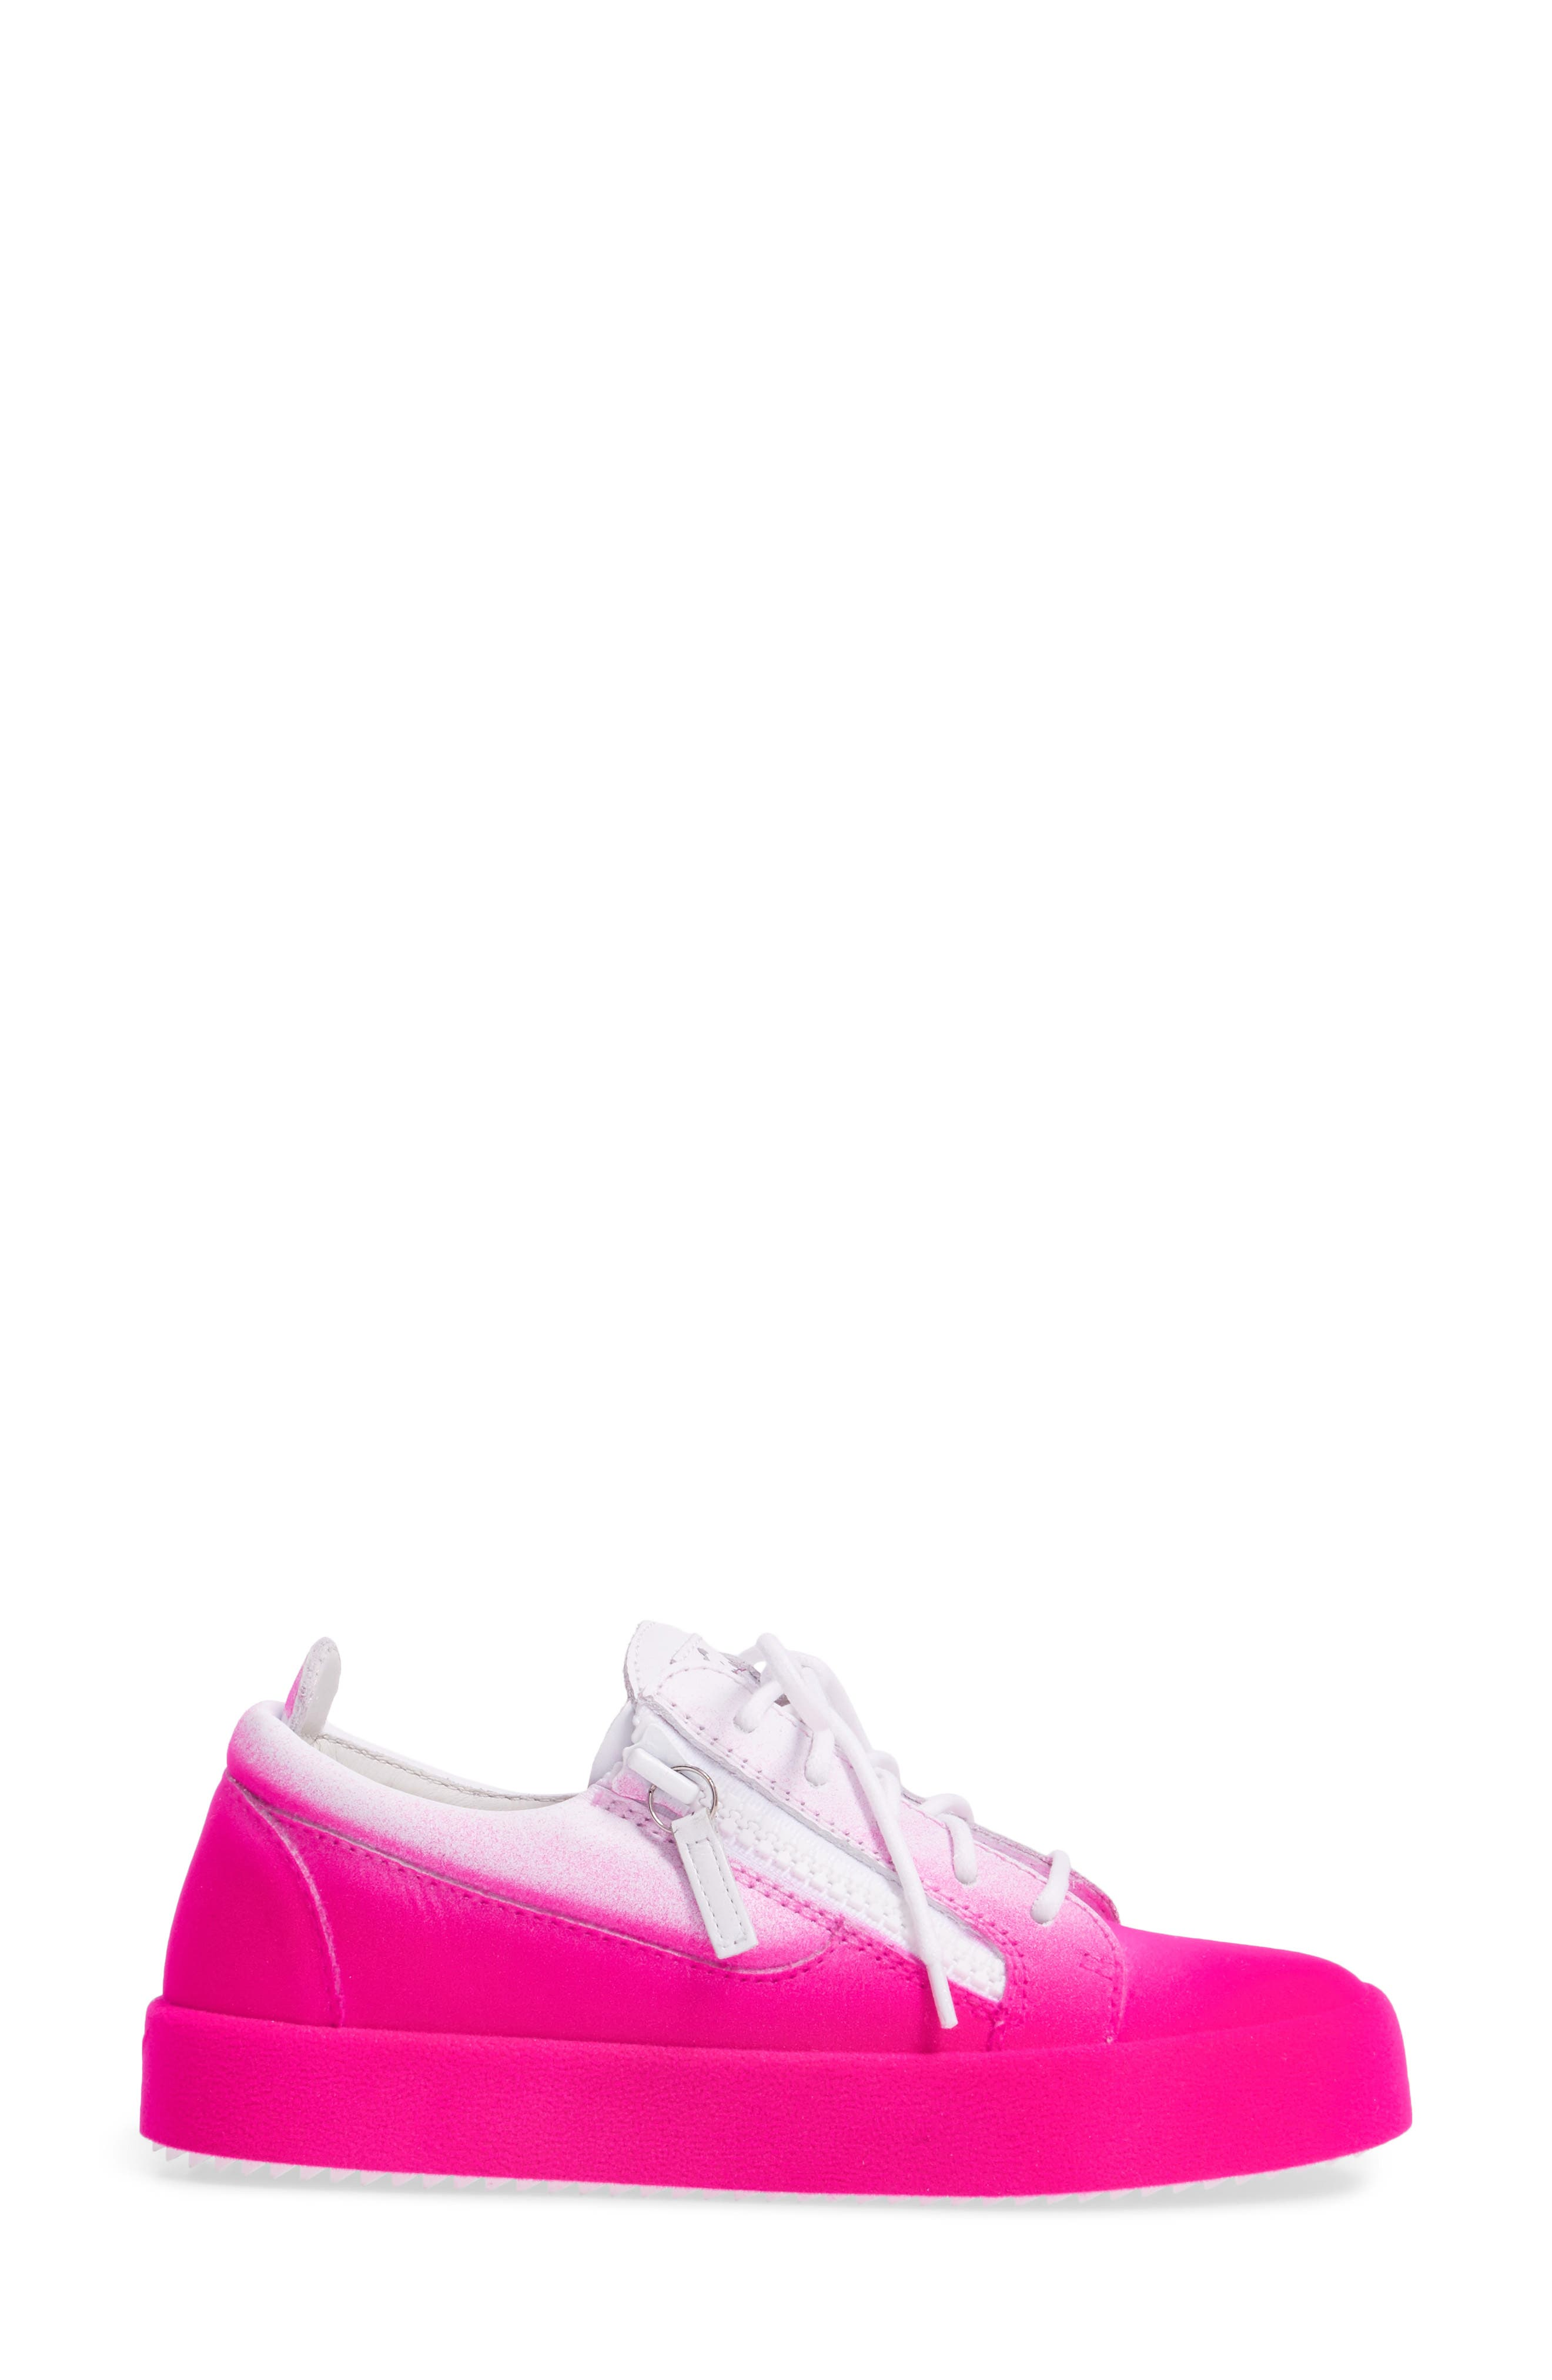 May London Low Top Sneaker,                             Alternate thumbnail 3, color,                             White/ Pink